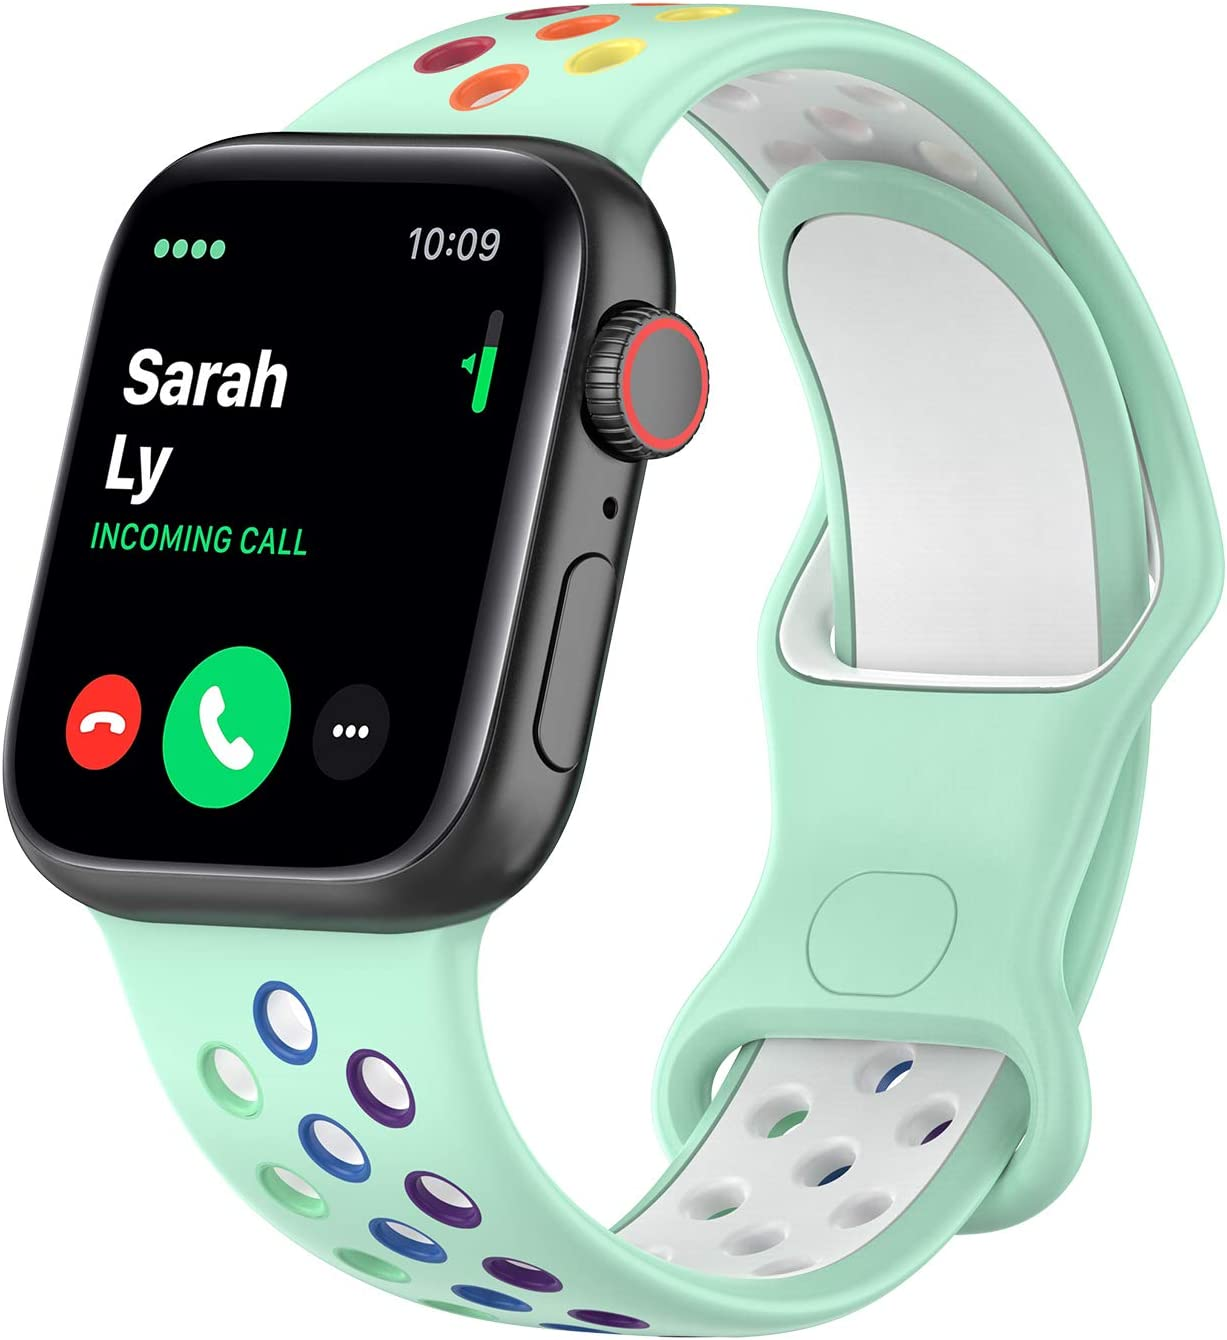 Tosembo Silicone Band Compatible for Apple Watch Band 38mm 40mm 42mm 44mm,Soft Silicone Sport Band Replacement Strap for Apple Watch Series 6/SE/5/4/3/2/1,Nike+,Sport,Edition(Colorful-Teal